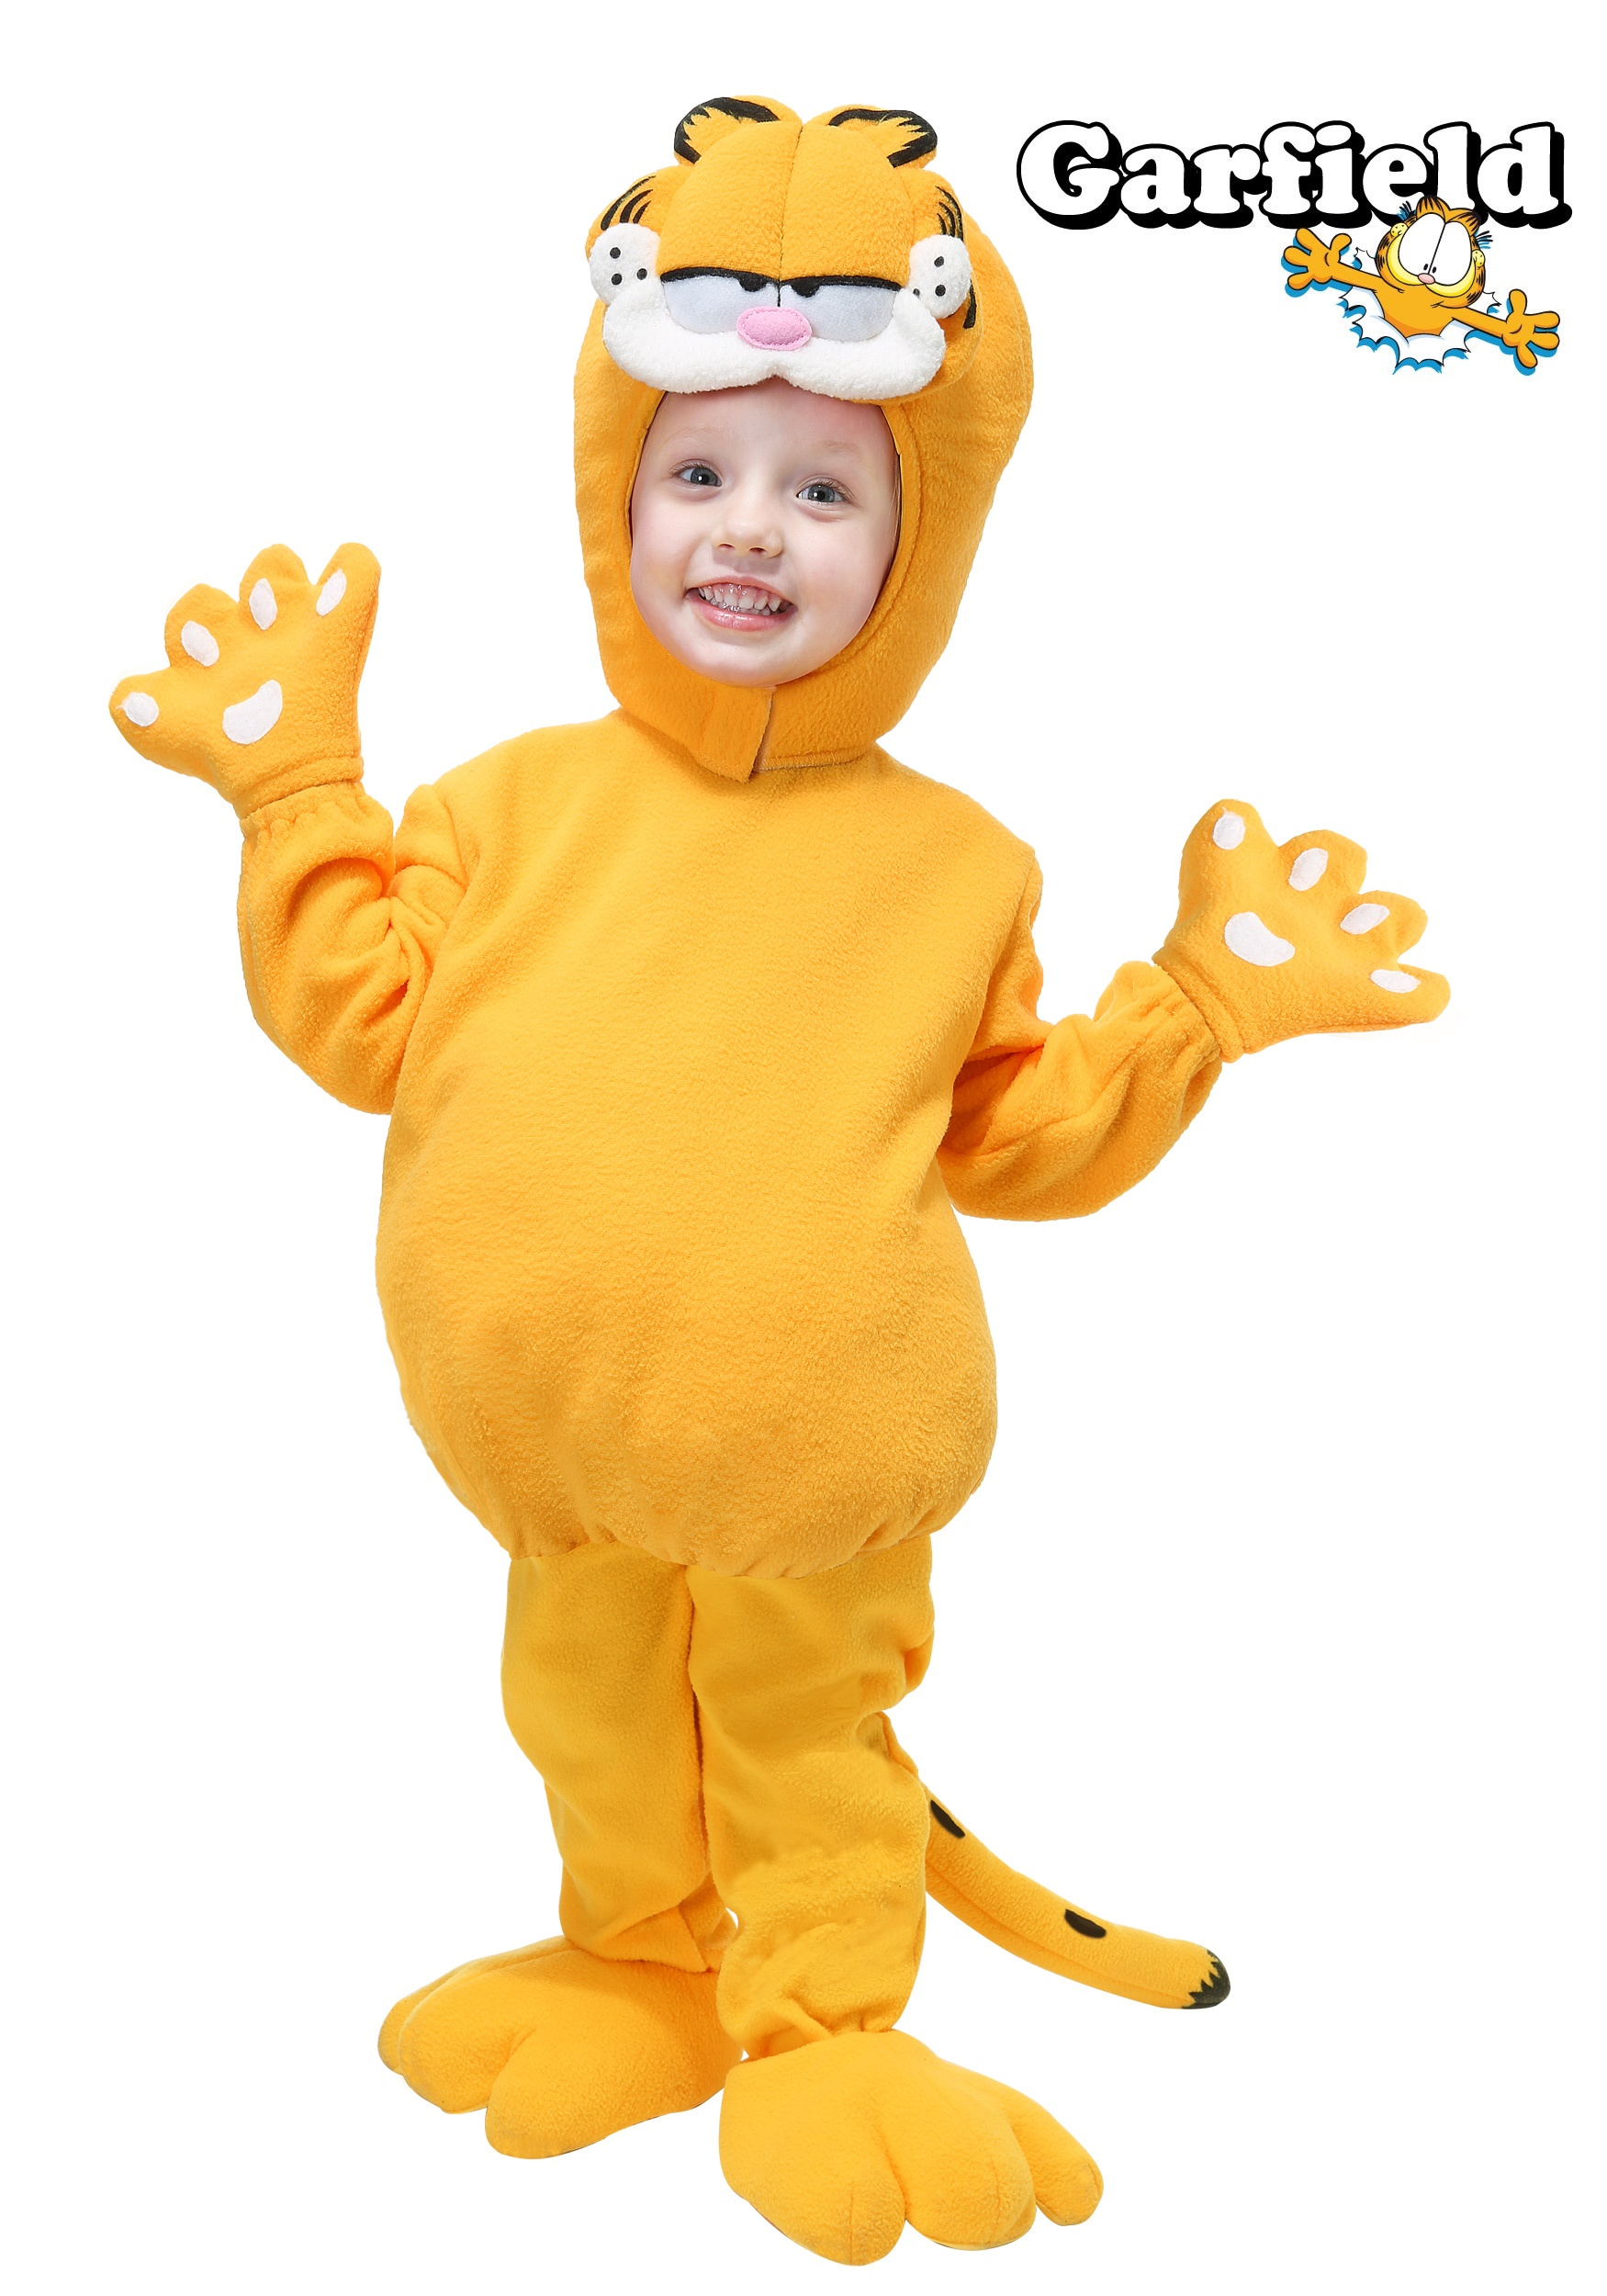 Toddler/Infant Garfield Costume  sc 1 st  Halloween Costume & Toddler/Infant Garfield Costume - Infant Halloween Costumes